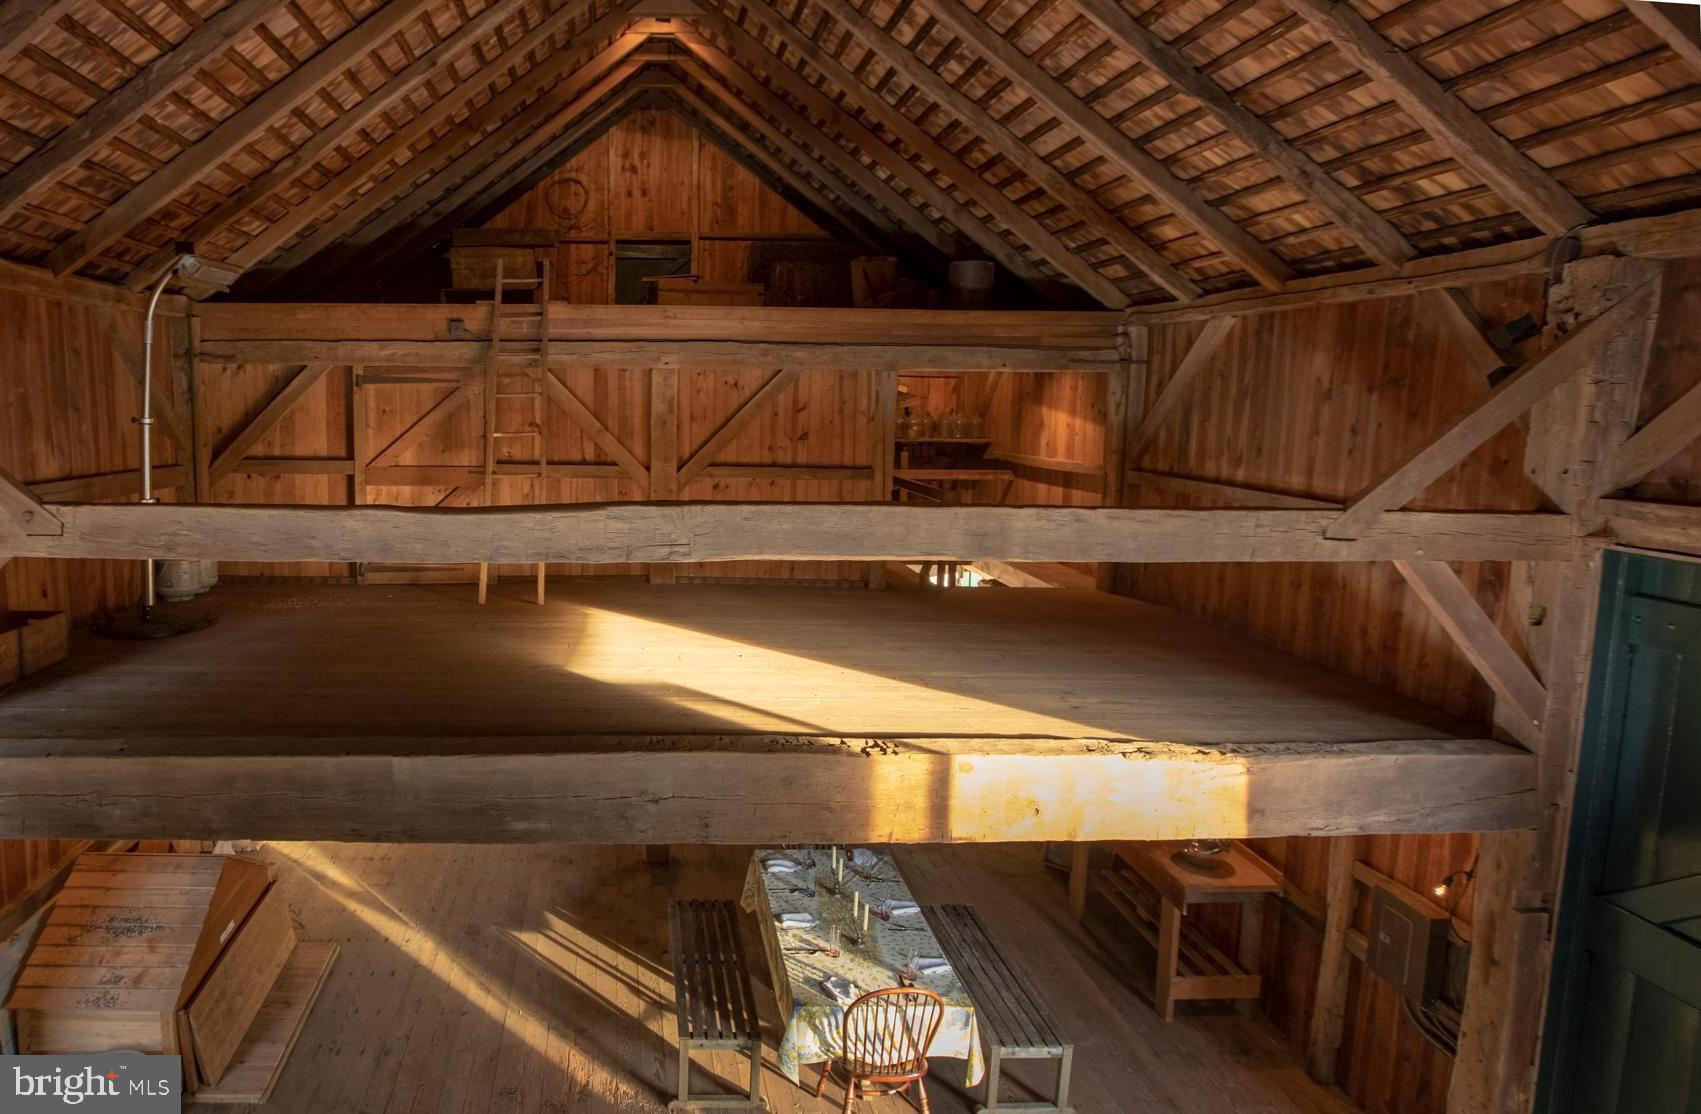 Indoor basket ball games can be played in the barn